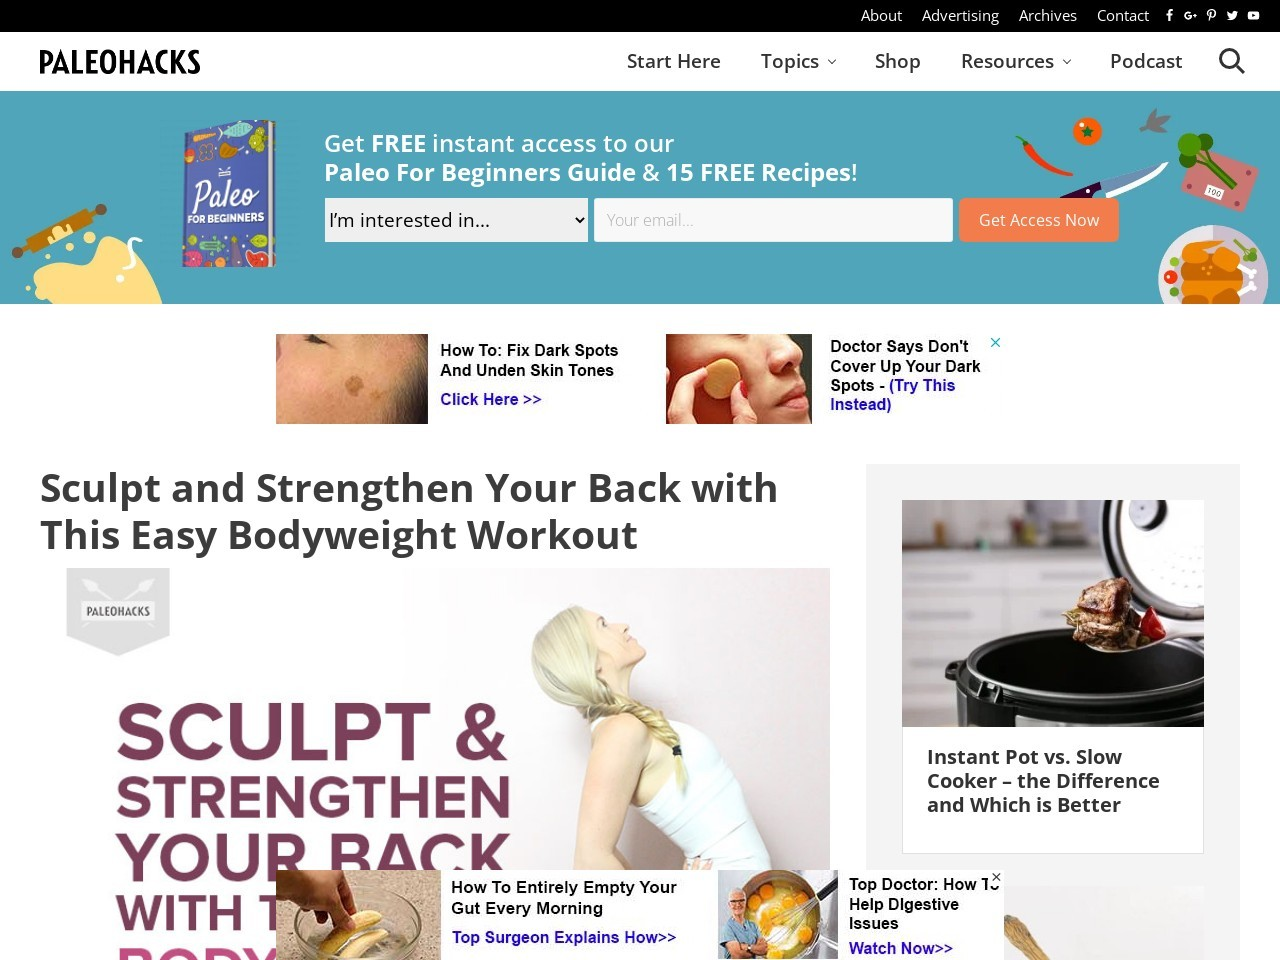 Sculpt and Strengthen Your Back with This Easy Bodyweight Workout